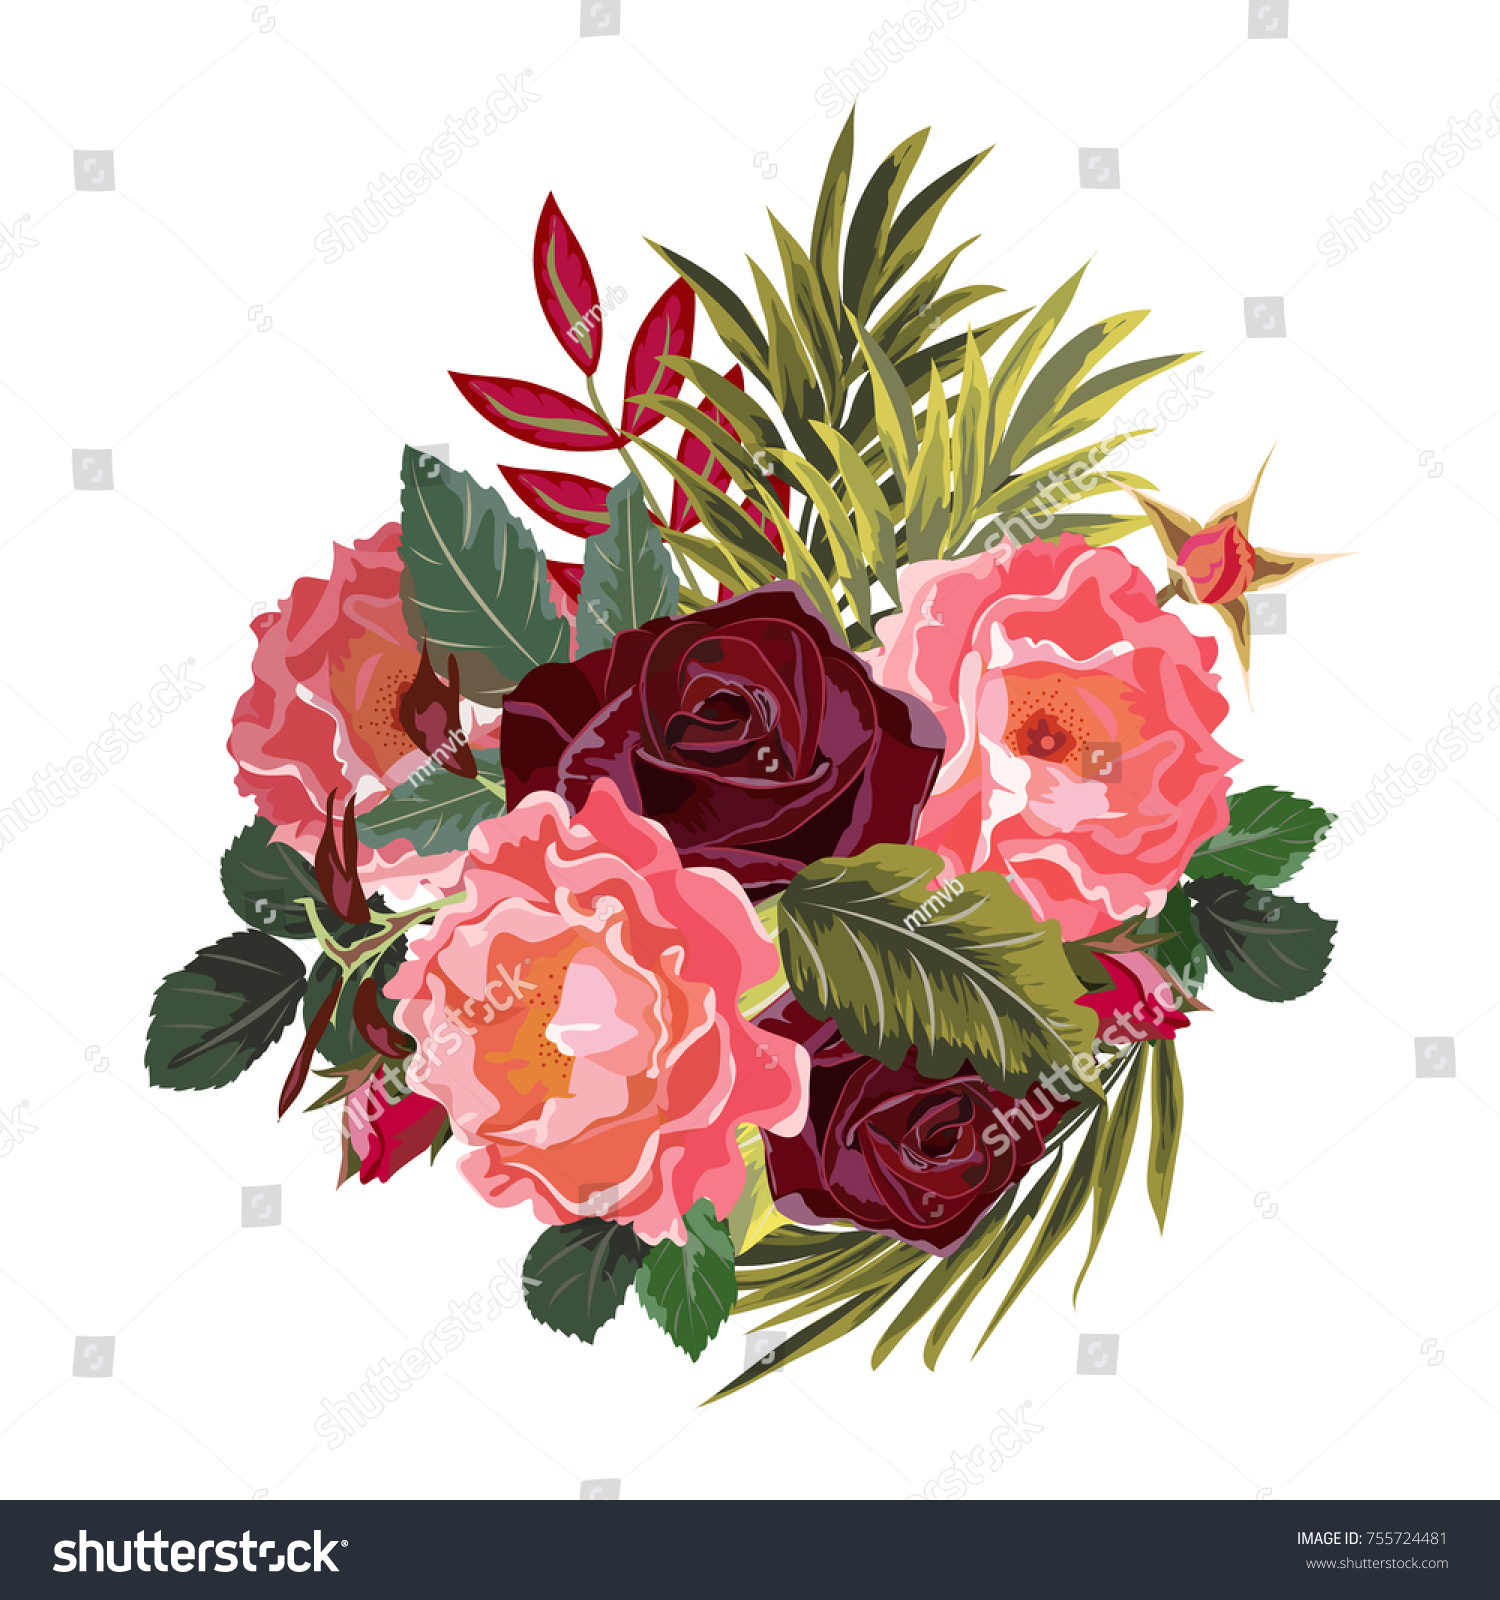 Bouquet Burgundy Pink Roses Decor Elements Stock Vector HD (Royalty ...